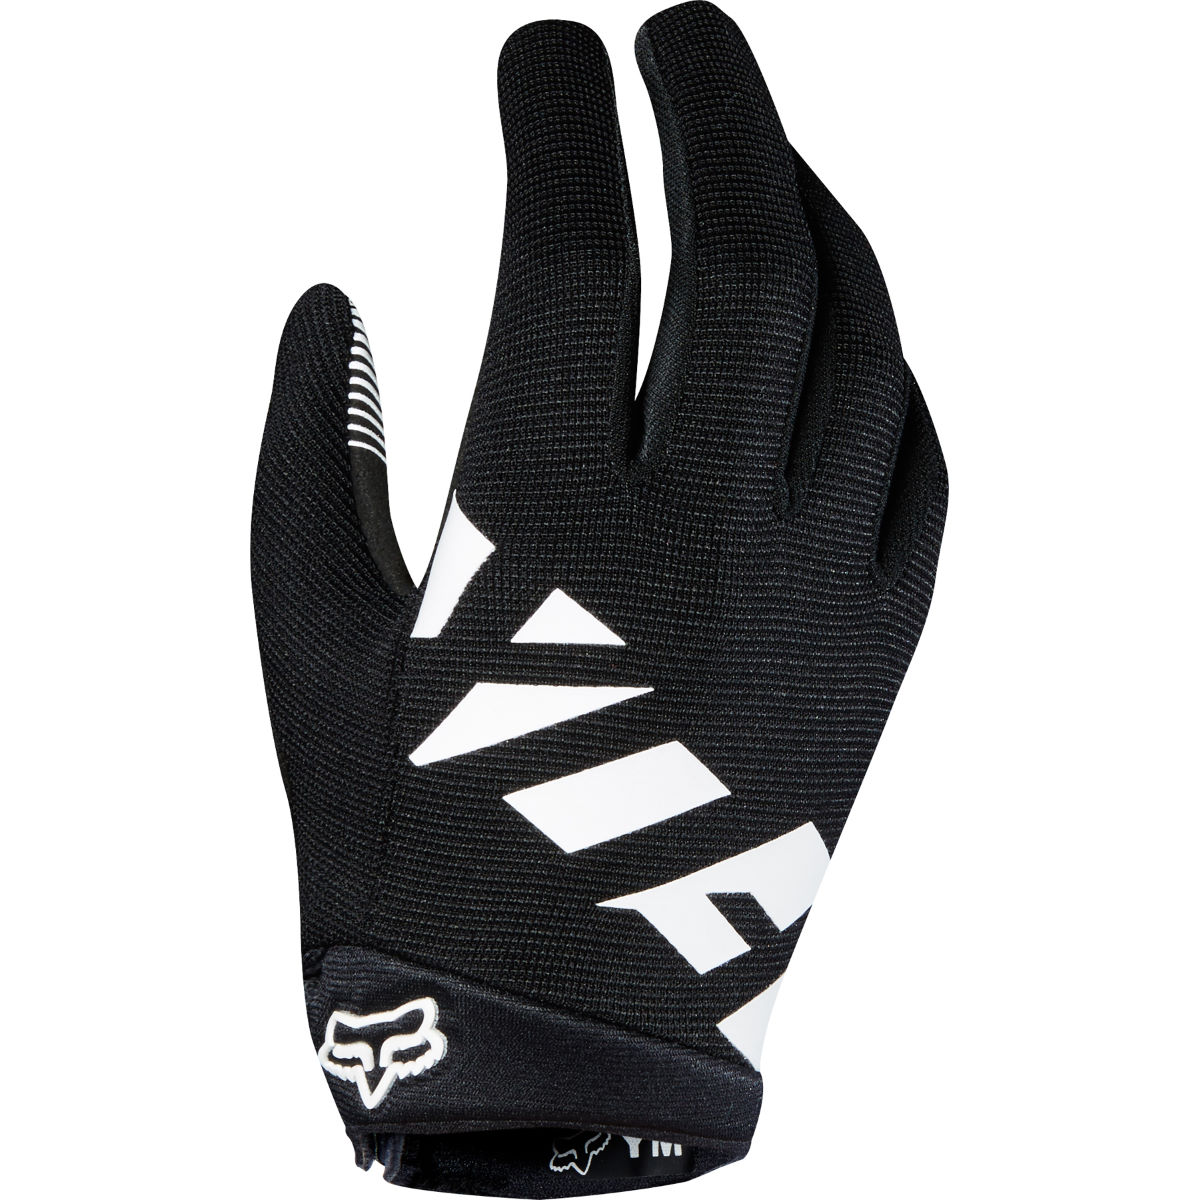 Fox Racing Youth Ranger Gloves - S Black/White | Long Finger Gloves